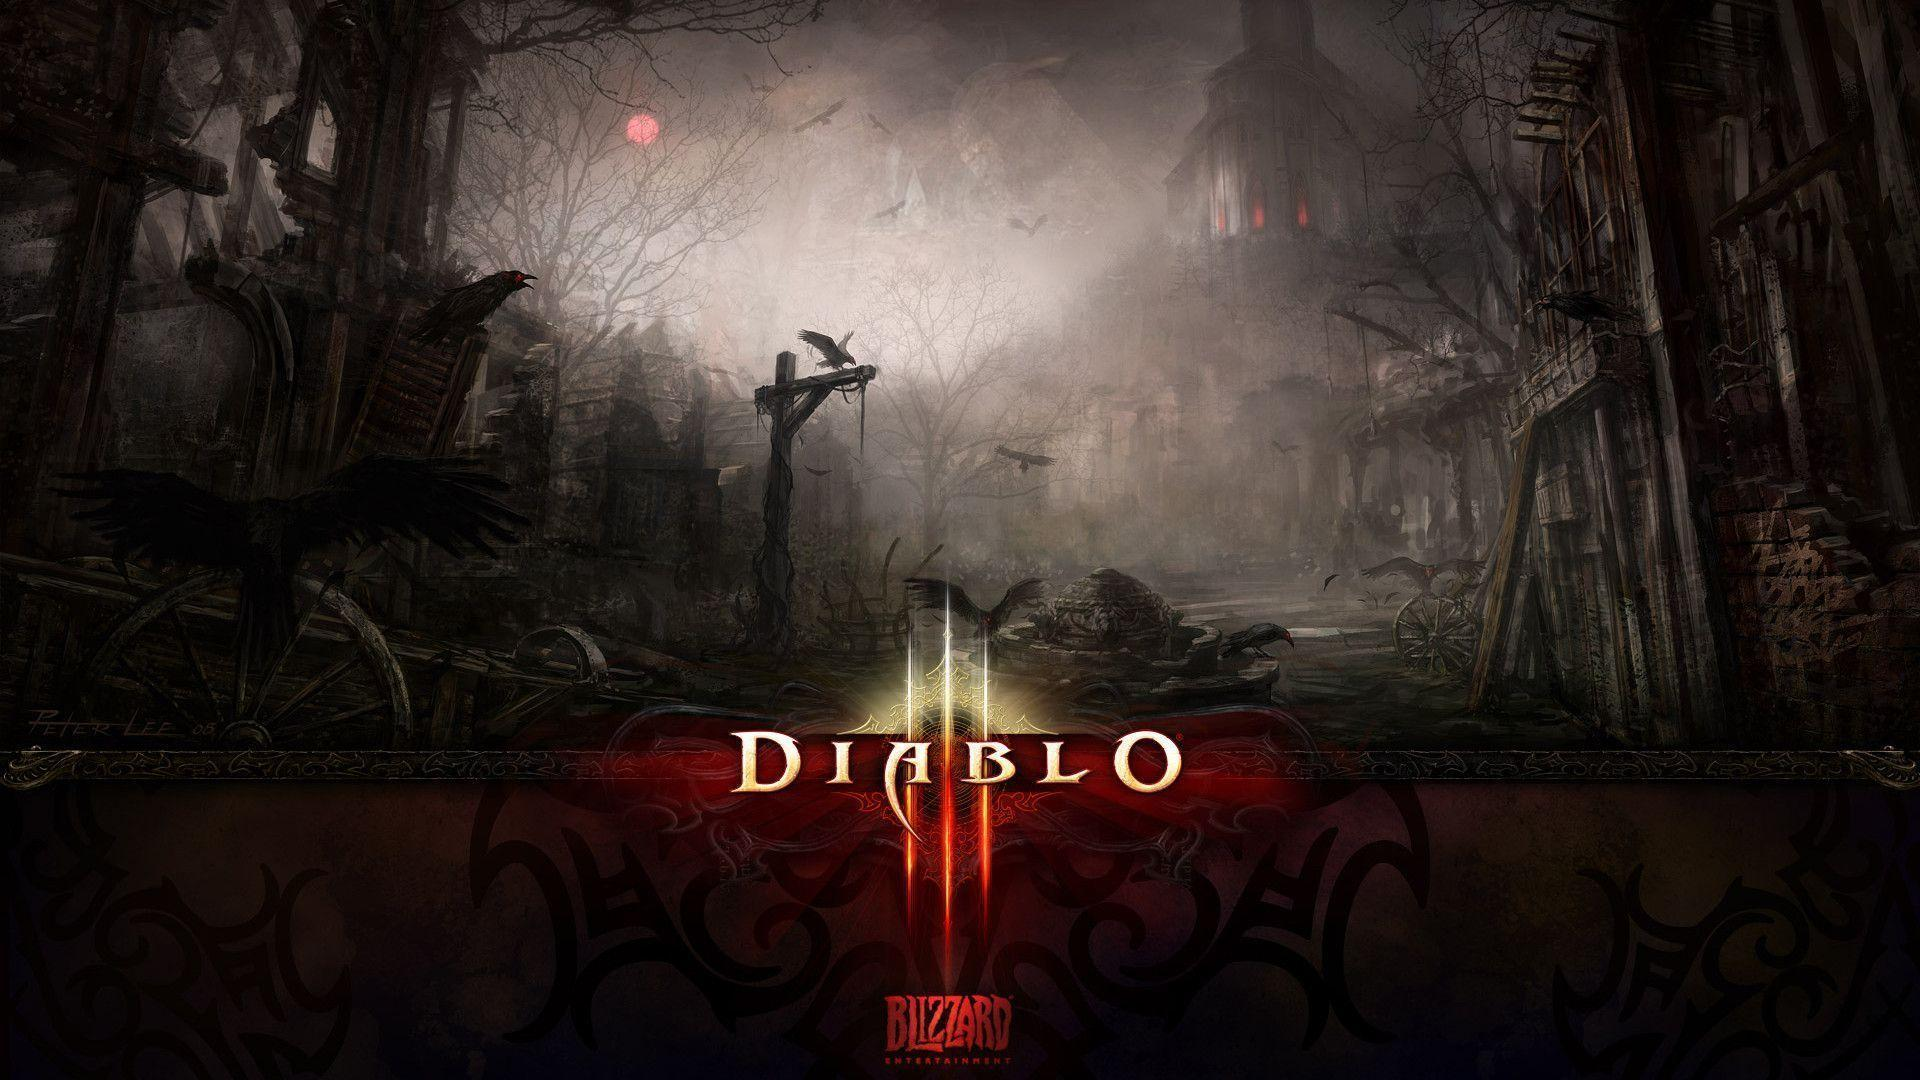 Diablo III Wallpapers in HD